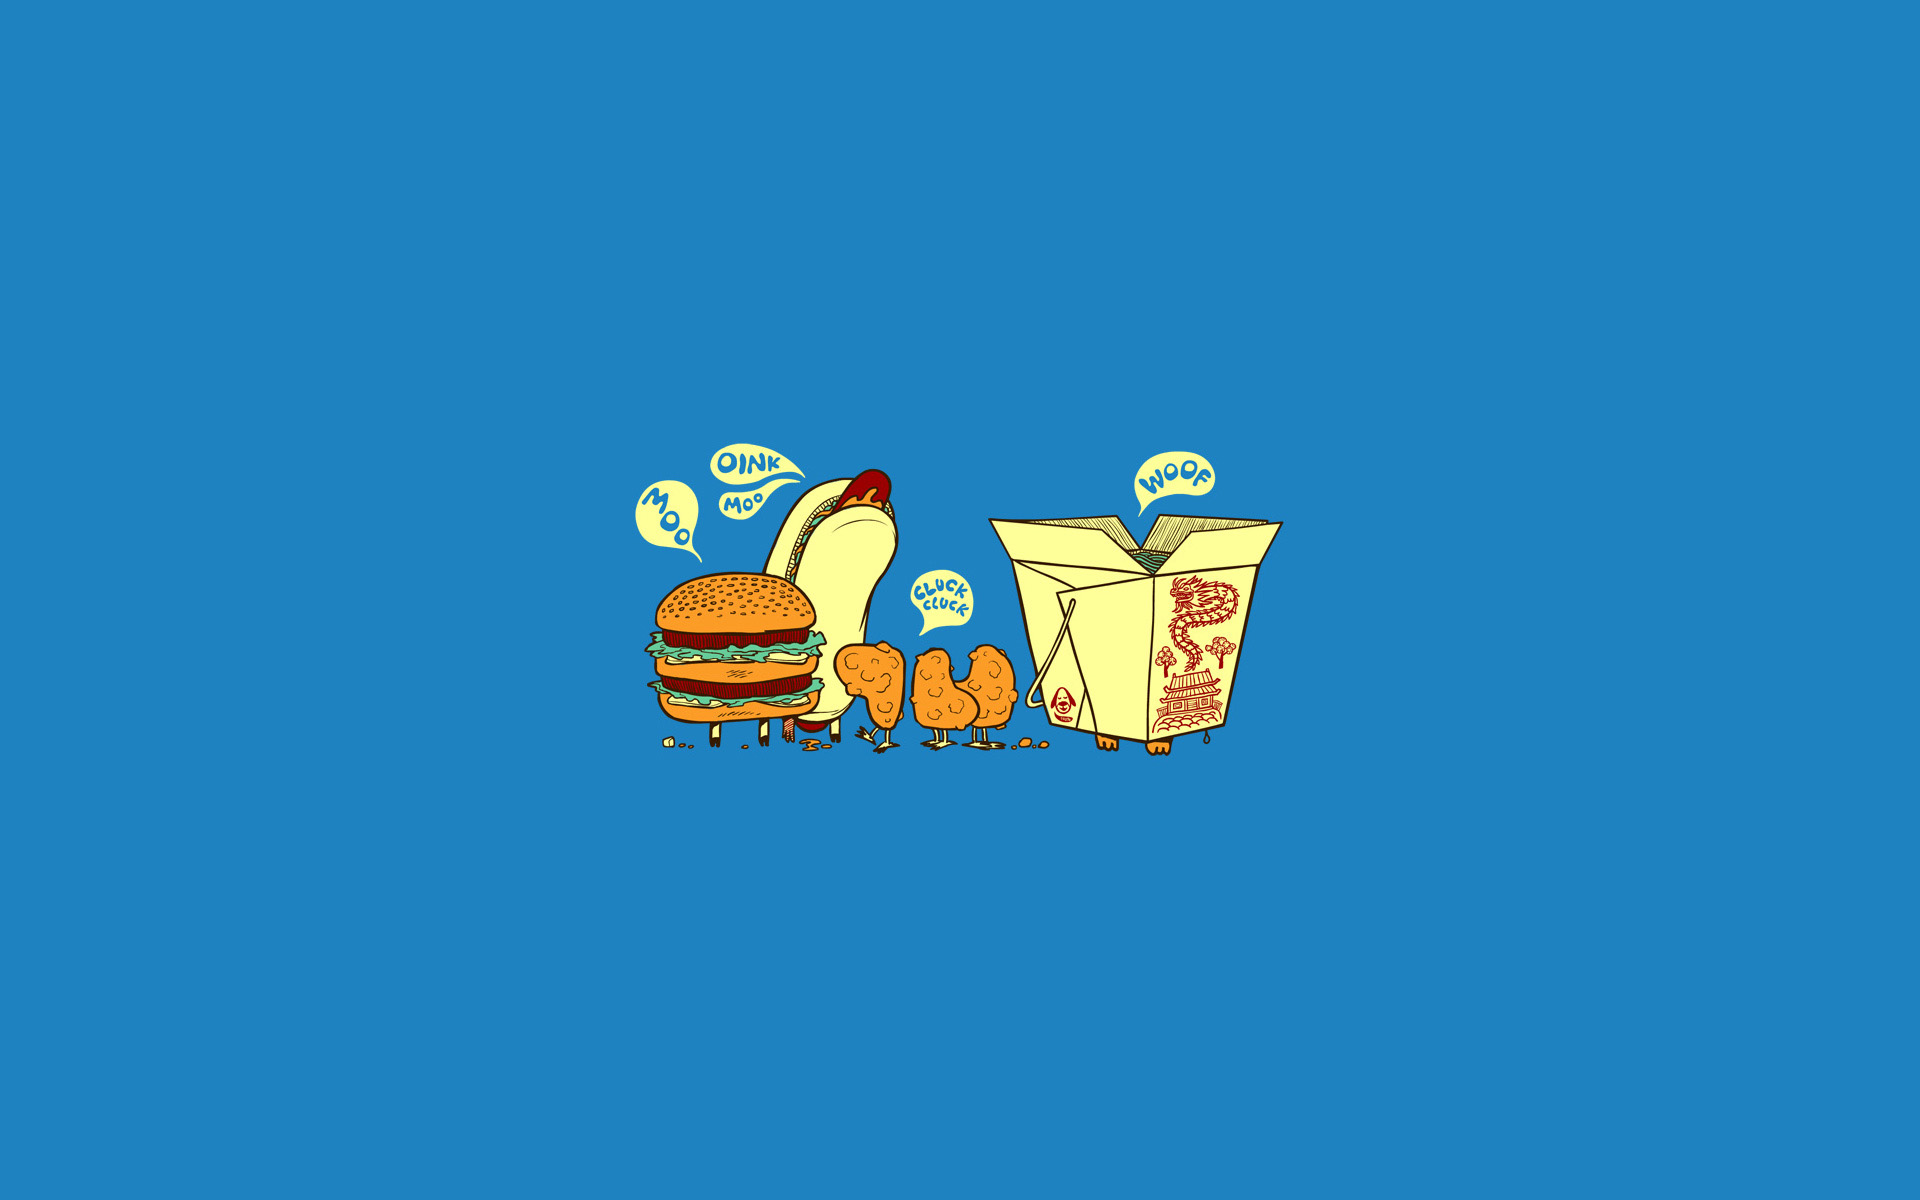 Reality Computer Wallpaper Cute Food Wallpaper Funny